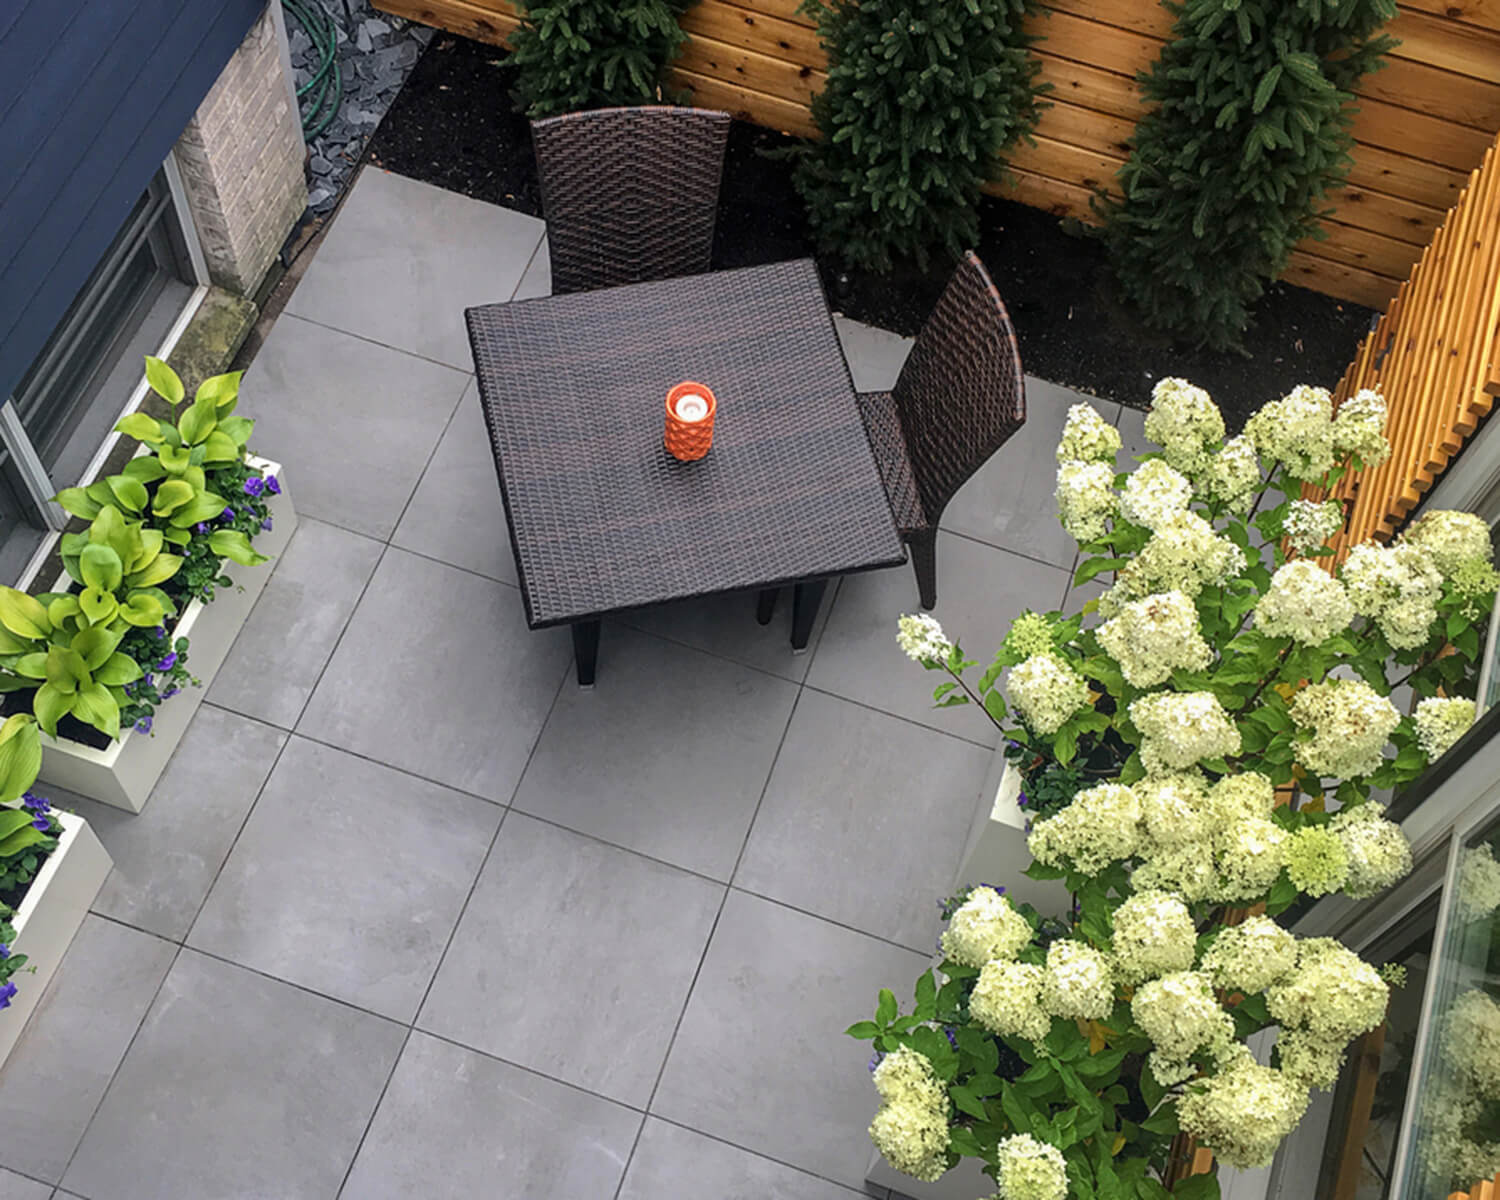 Grey Unilock slabs on a roof deck, which has 2 brown dining chairs and a table